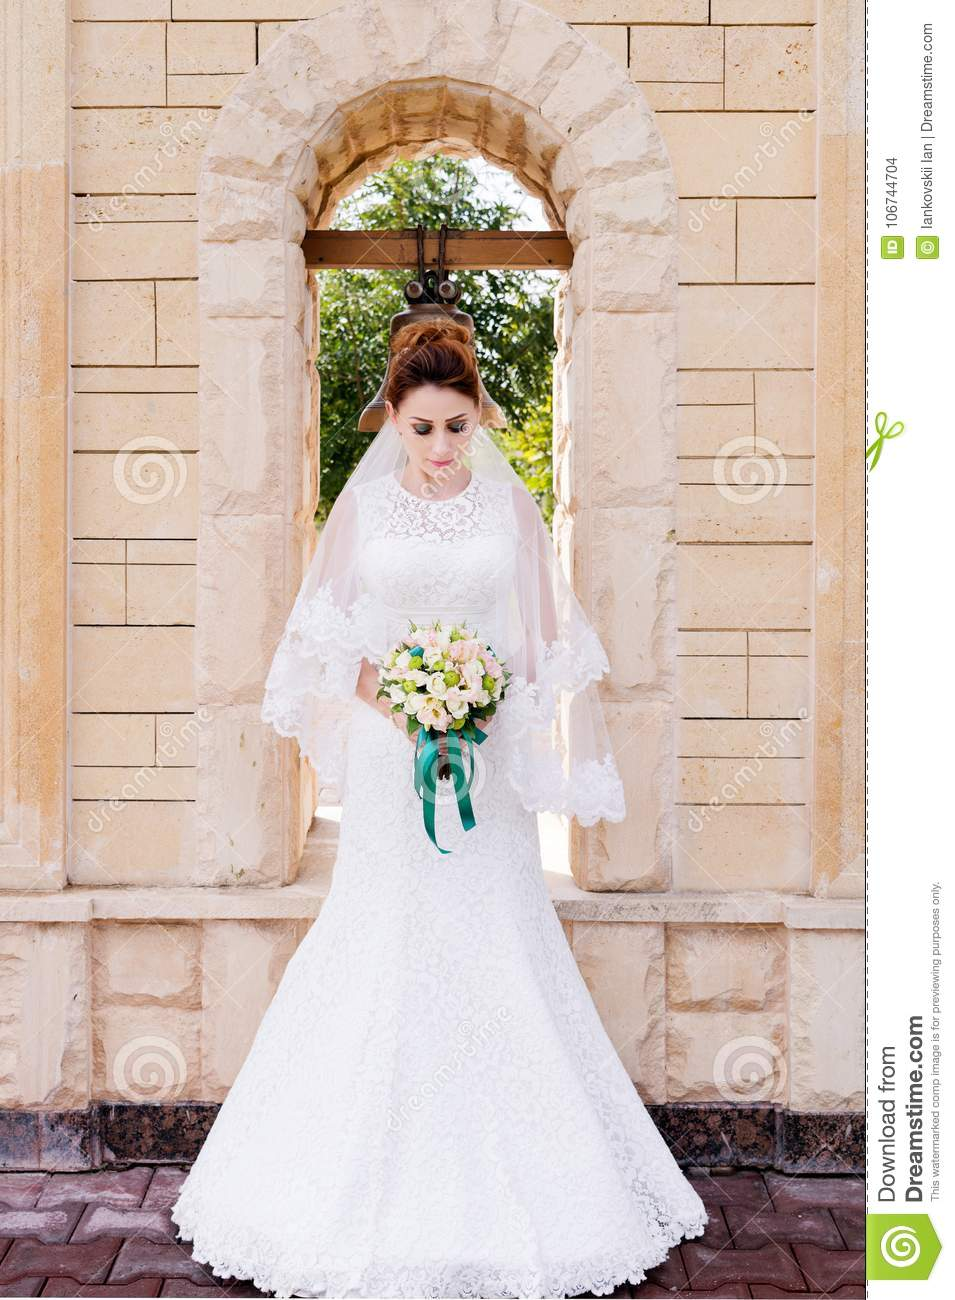 A Beautiful Bride In Wedding Dress And Bouquet Her Hands Stands Outdoors Against Stone Arch With Bell The Concept Of Happiness: Beautiful Stone Wedding Dress At Websimilar.org